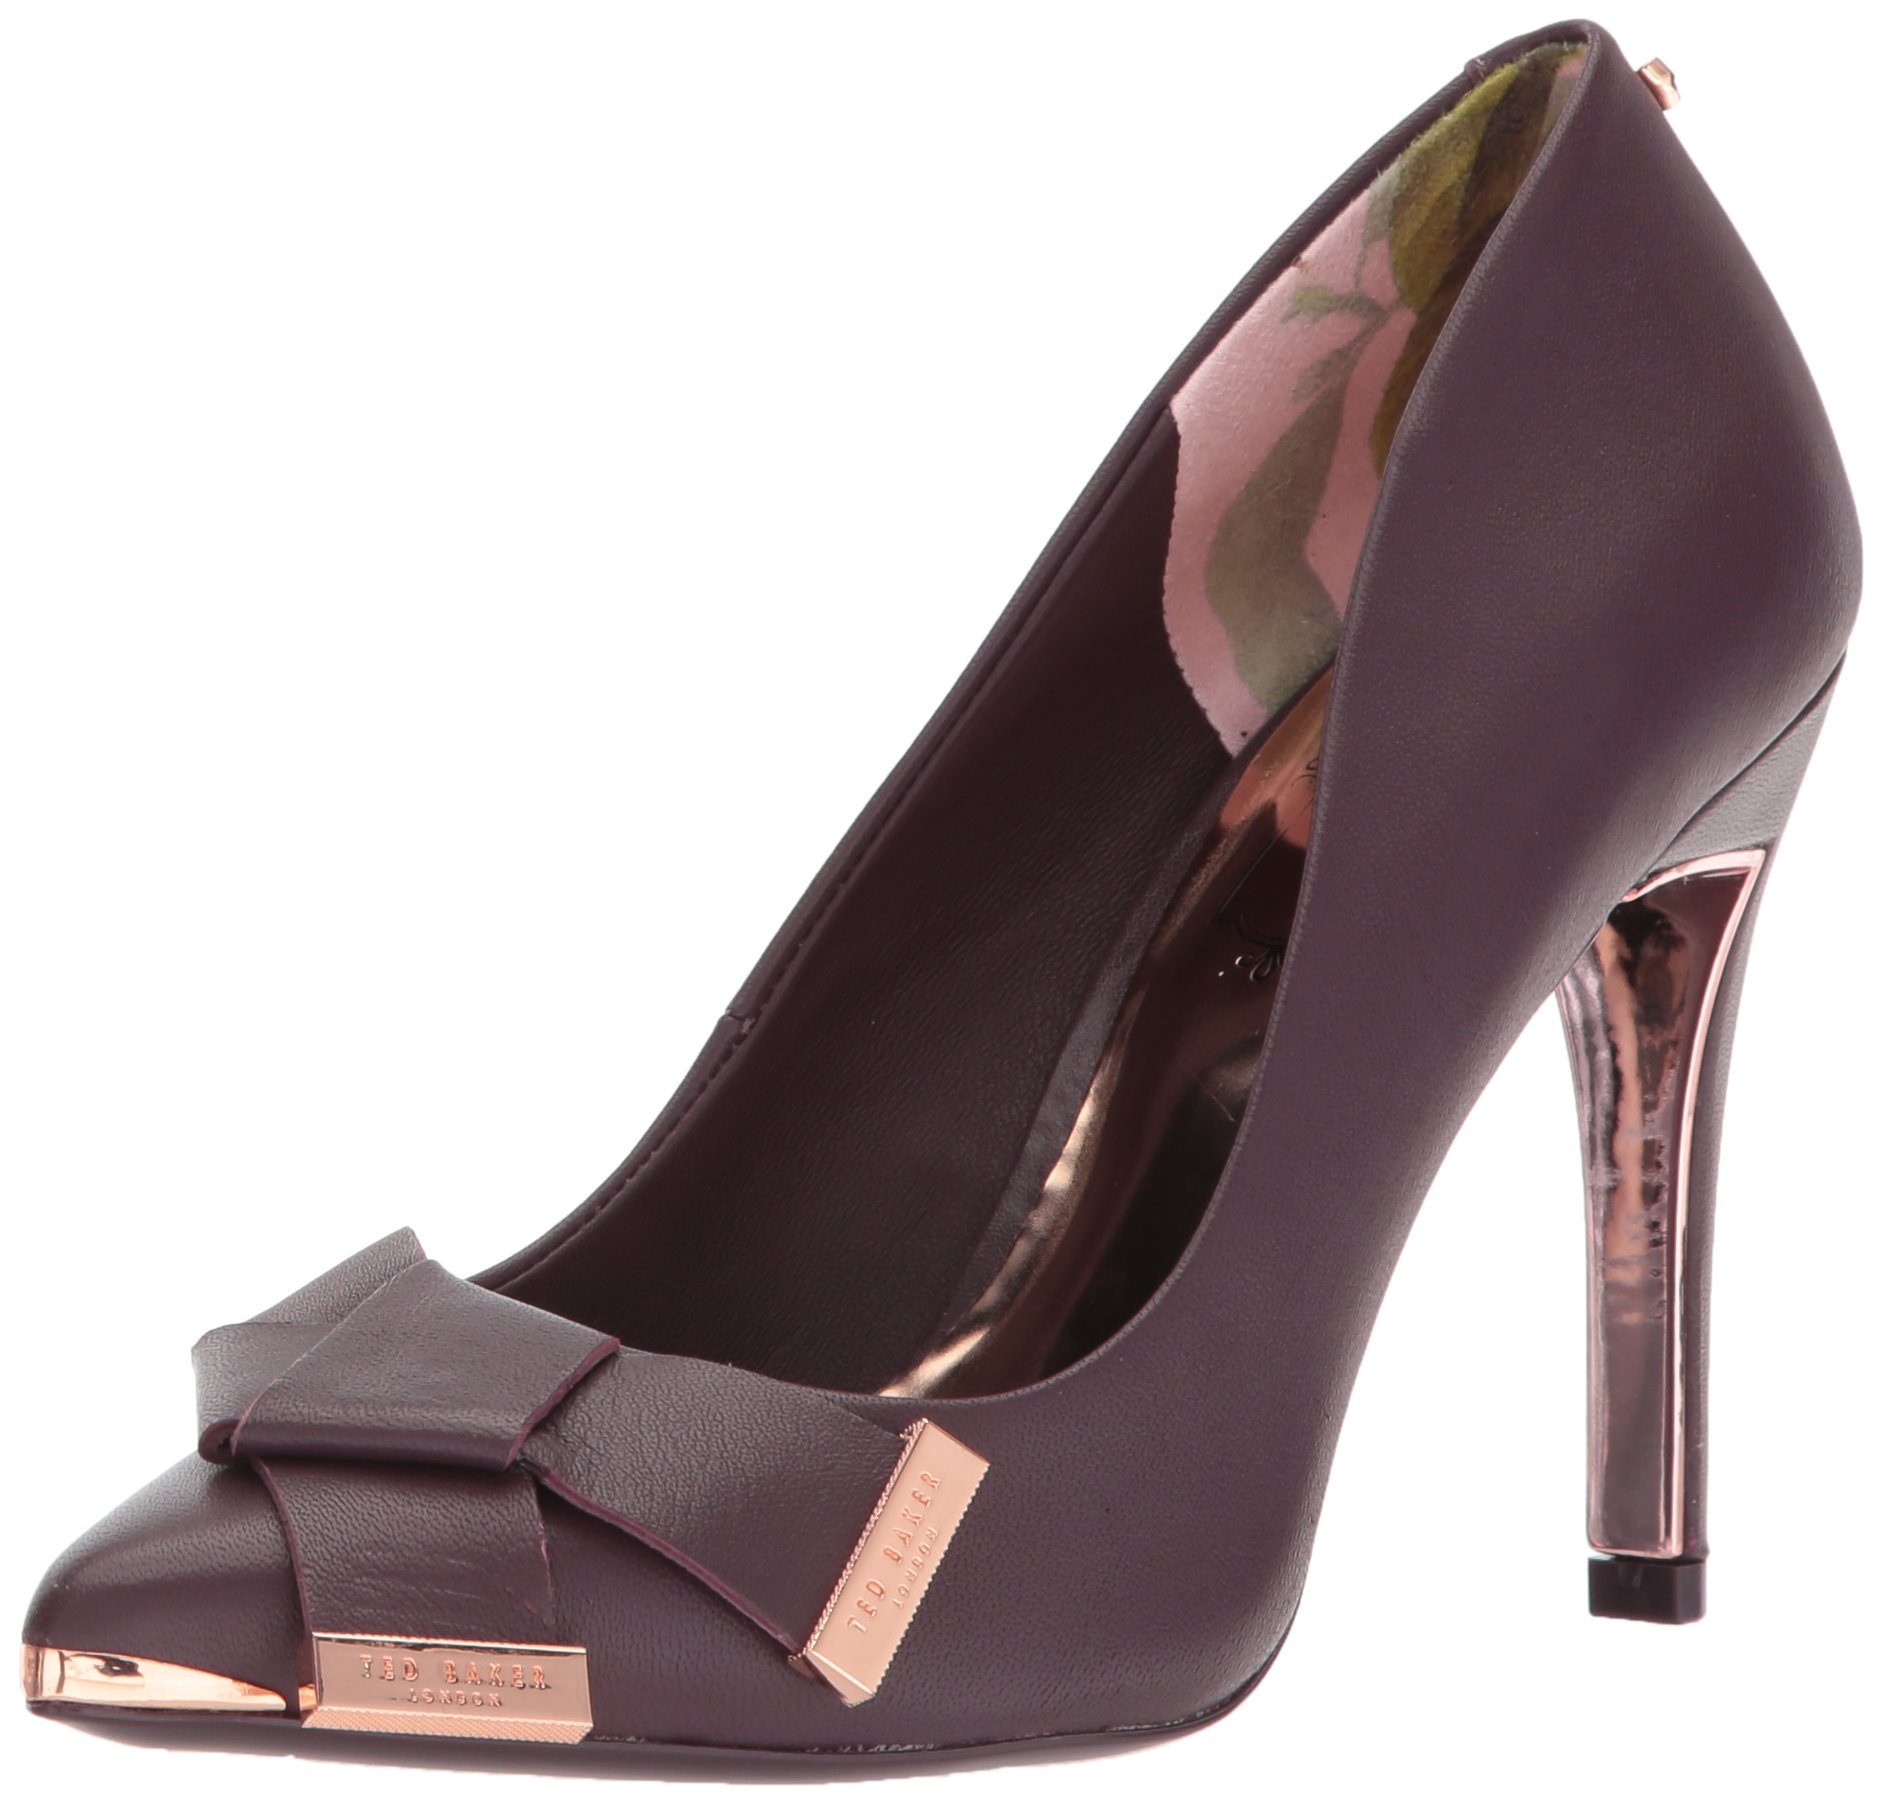 Ted Baker Women's Ayelar Pump, Bugundy, 5 B(M) US by Ted Baker (Image #1)